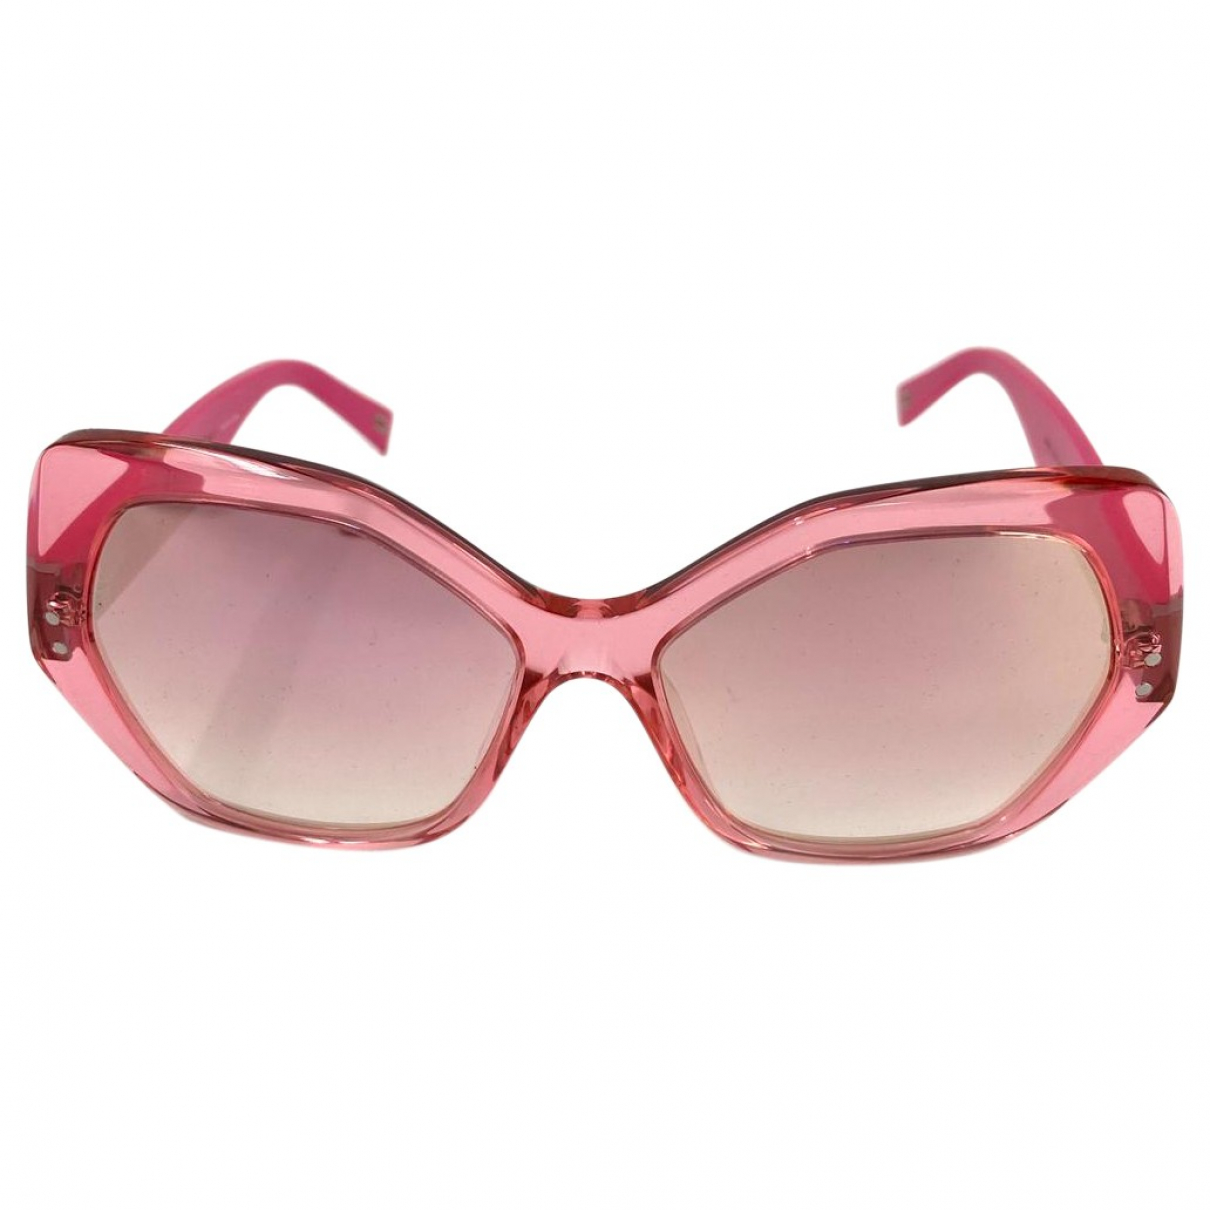 Marc By Marc Jacobs \N Pink Sunglasses for Women M International